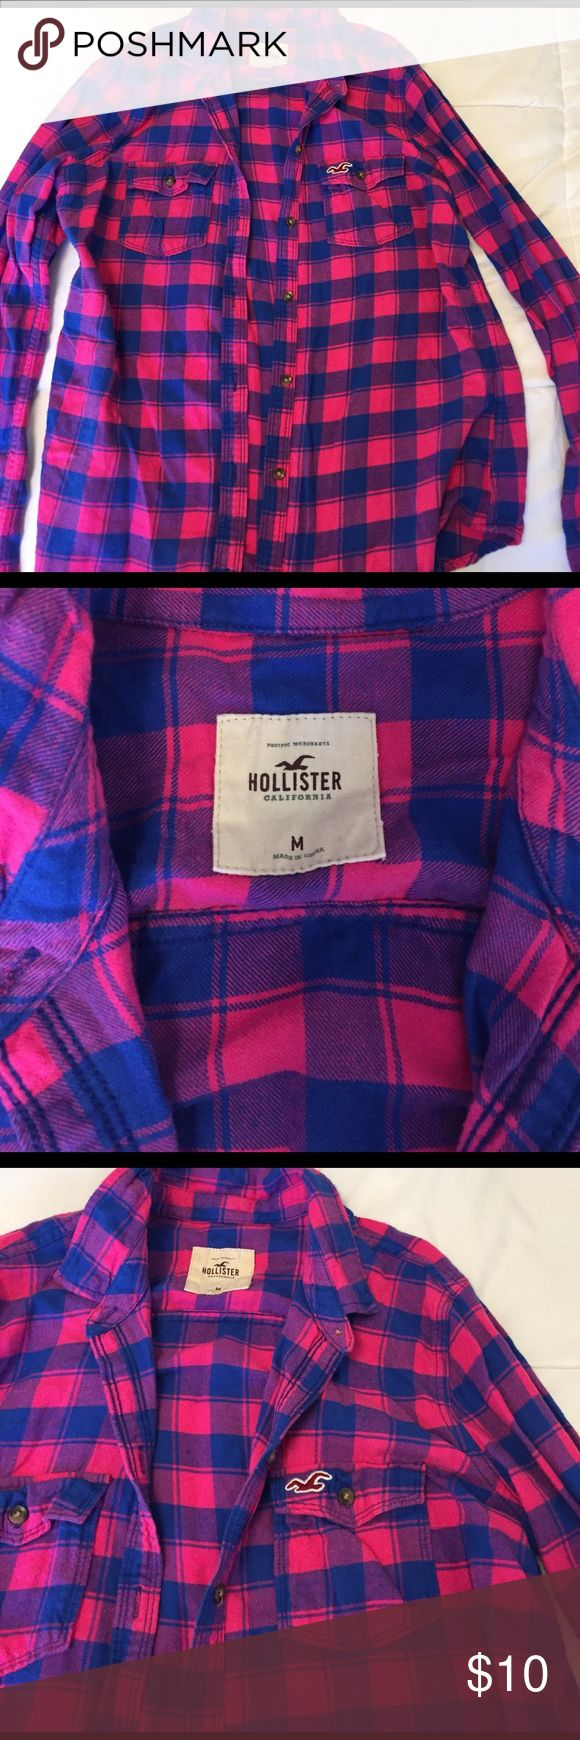 HOLLISTER FLANNEL- LIKE NEW! This flannel from Hollister looks brand new! It is in great condition and the colors are as bright as ever! Hollister Tops Button Down Shirts